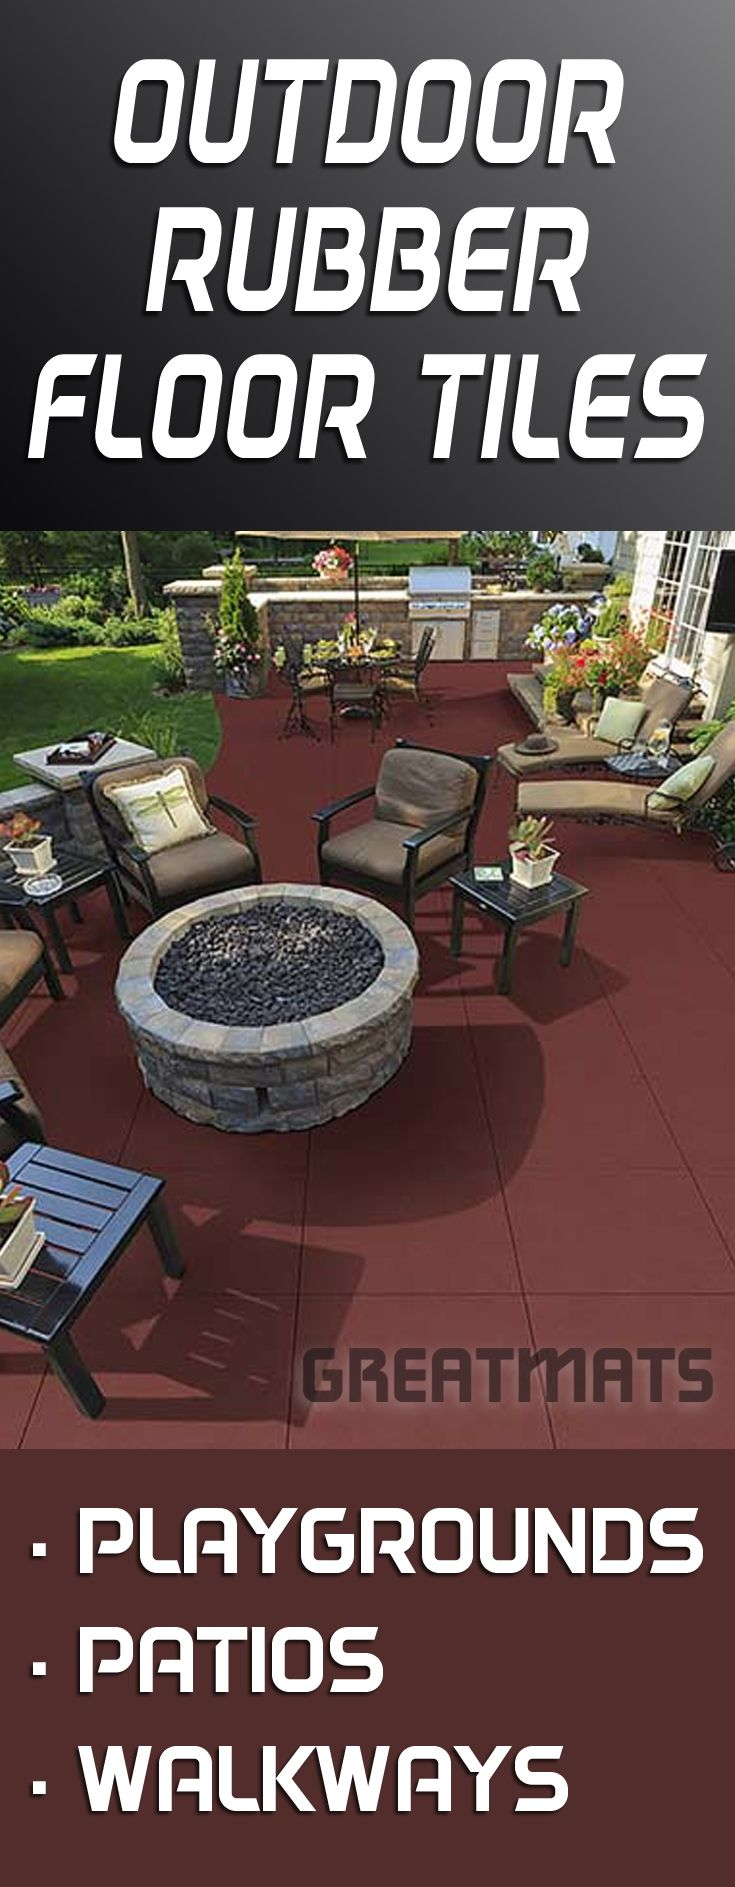 Find outdoor rubber floor tiles for playgrounds, patios and walkways at Greatmats.